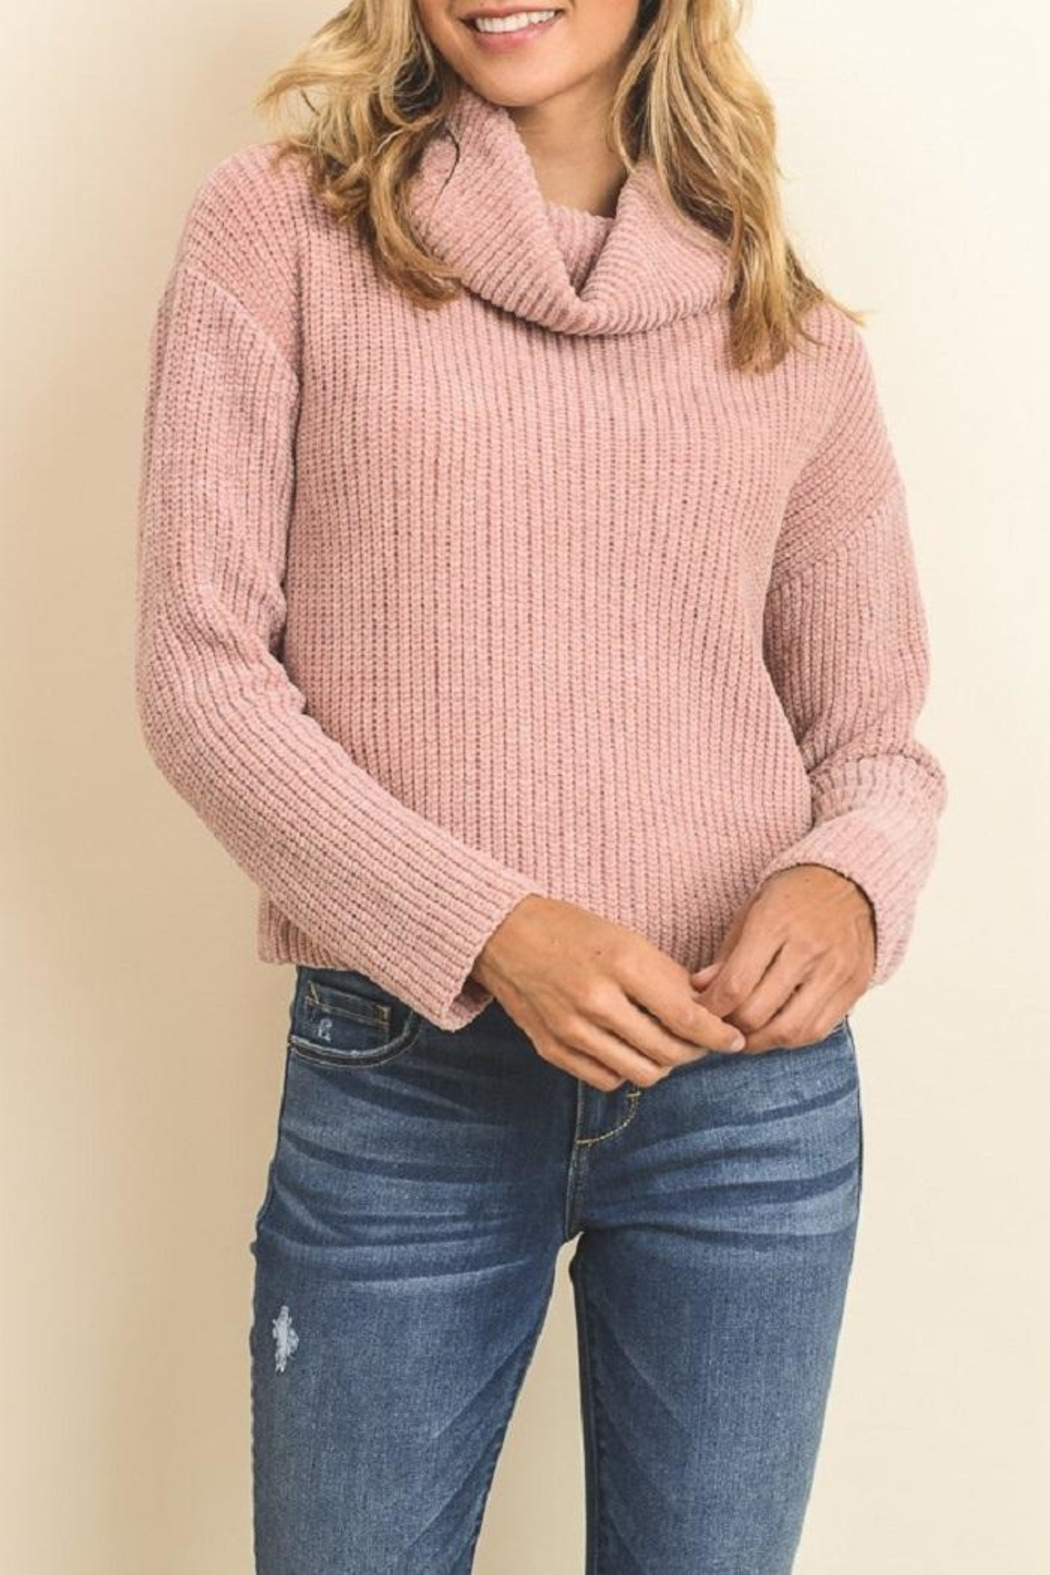 dress forum Soft Chenille Turtleneck Sweater from New York City by ...